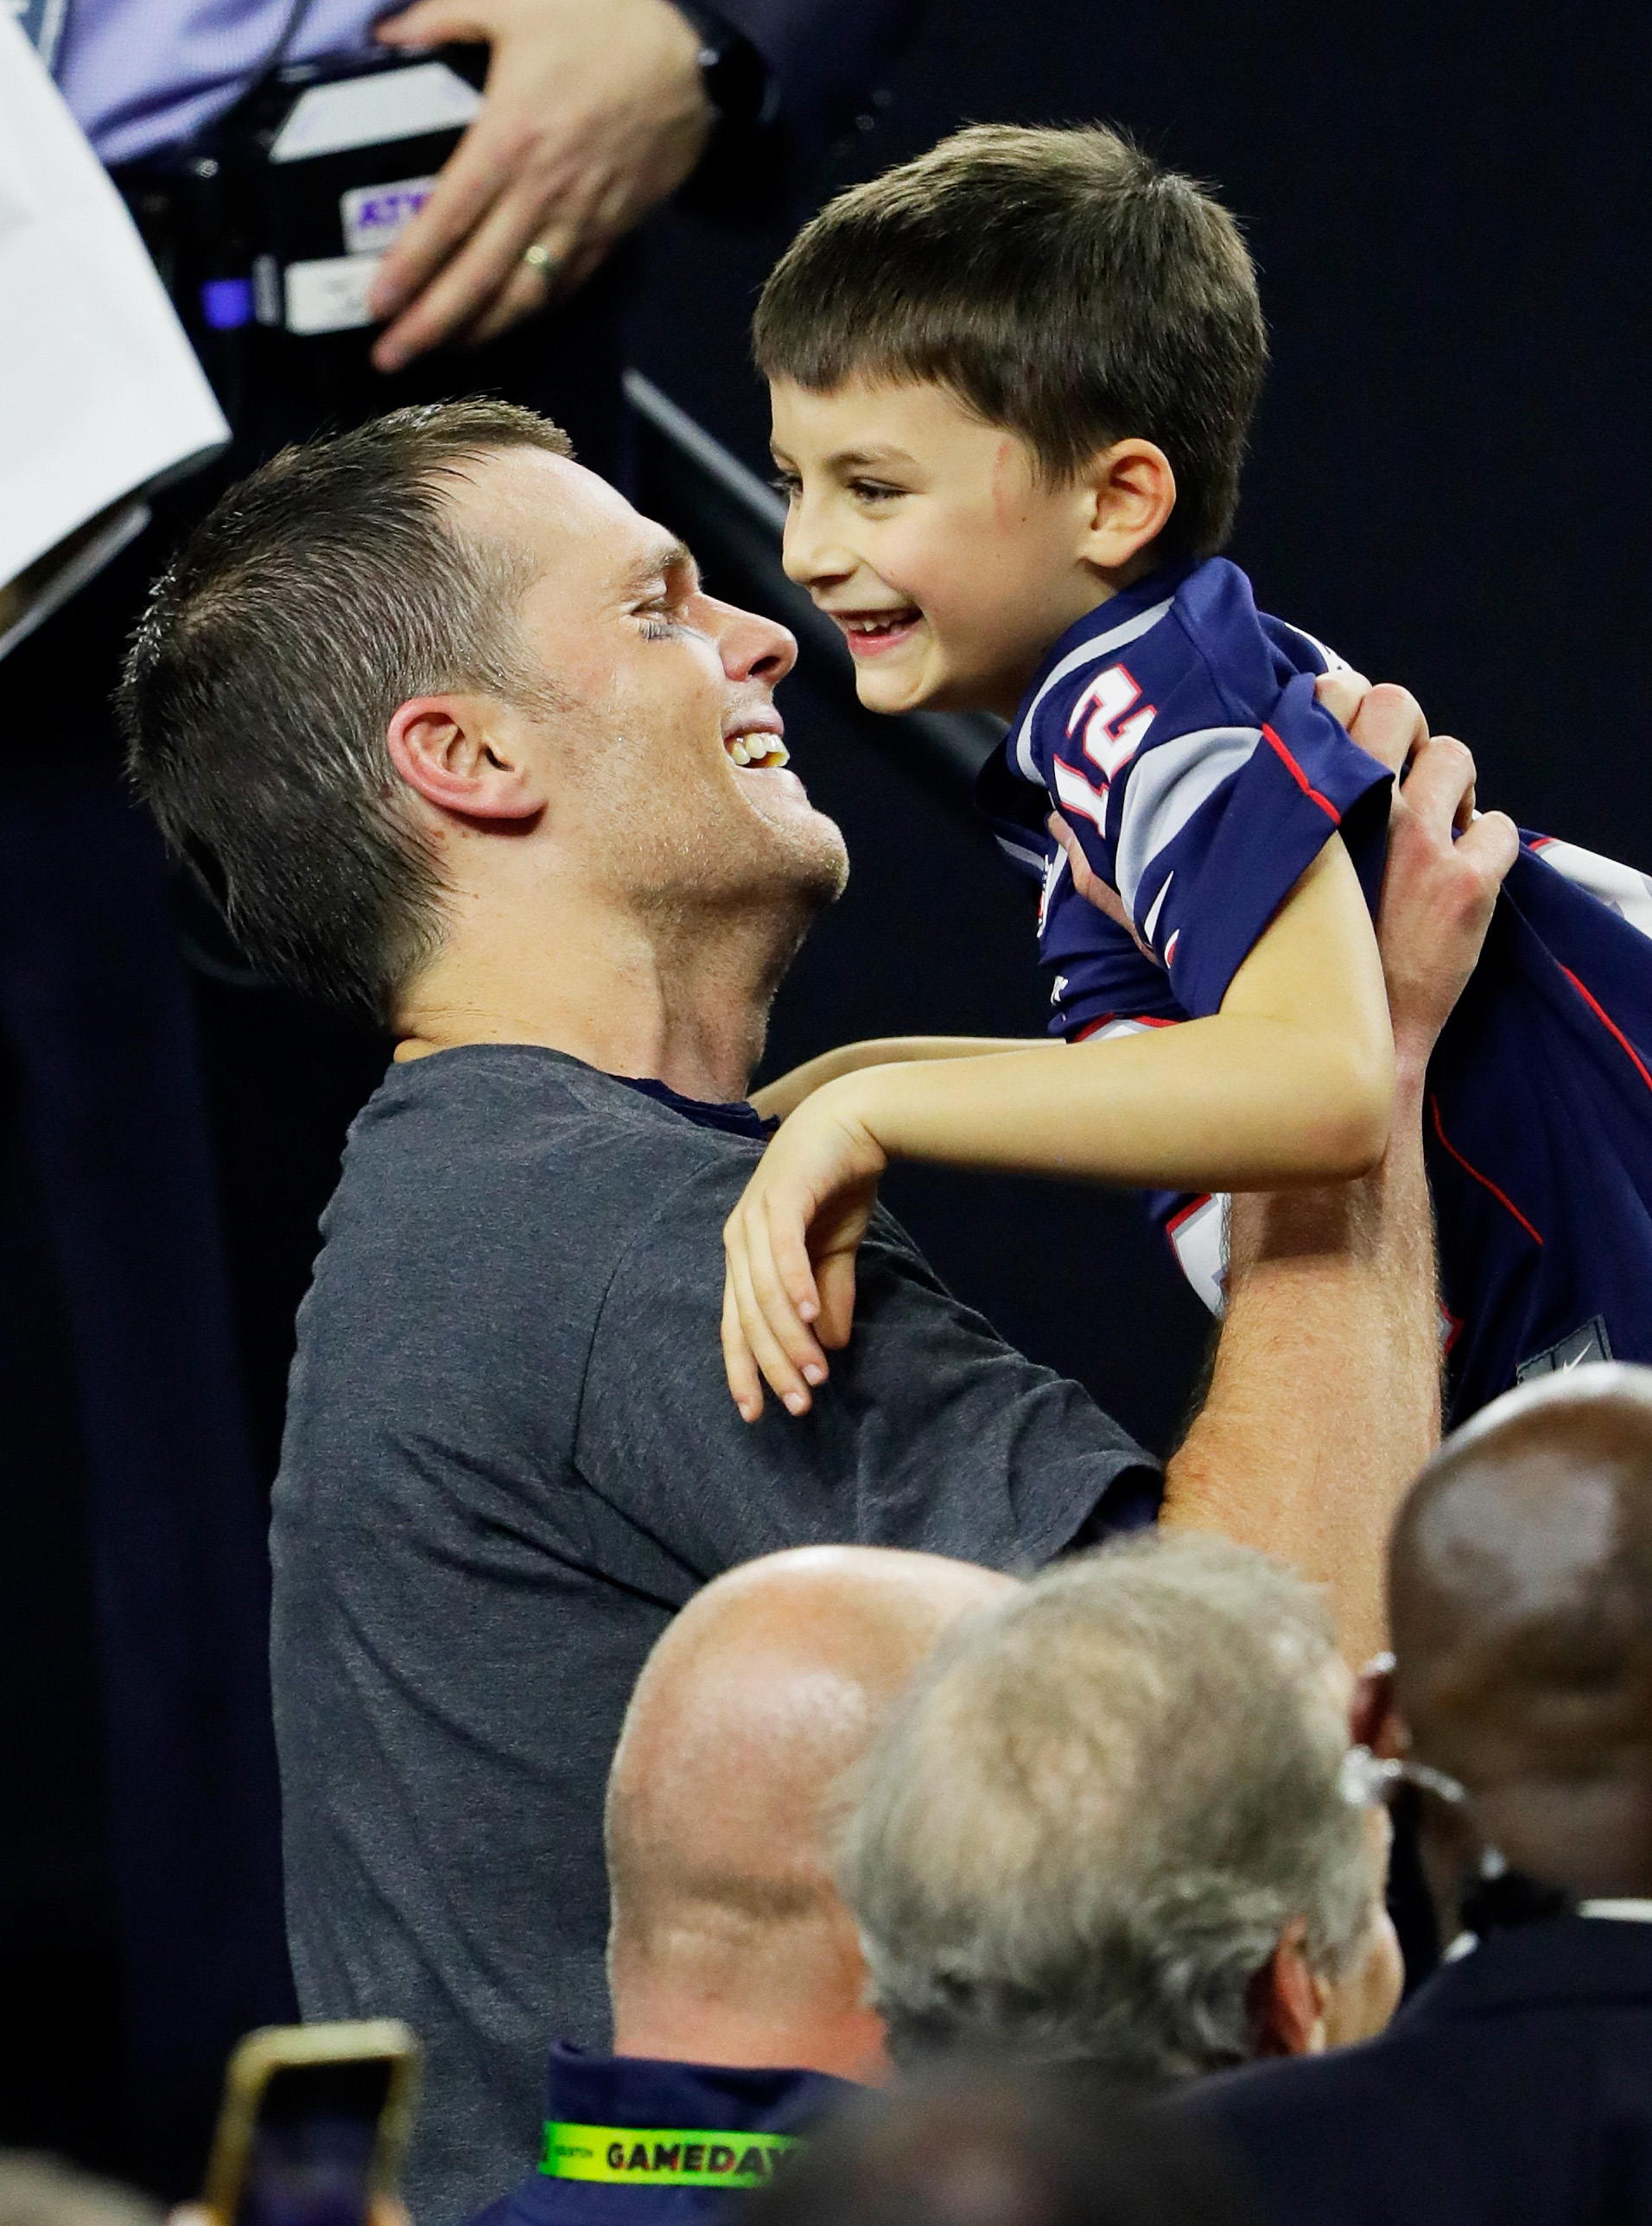 HOUSTON, TX - FEBRUARY 05:  Tom Brady #12 of the New England Patriots celebrates with his son after defeating the Atlanta Falcons 34-28 in overtime to win Super Bowl 51 at NRG Stadium on February 5, 2017 in Houston, Texas.  (Photo by Jamie Squire/Getty Images)